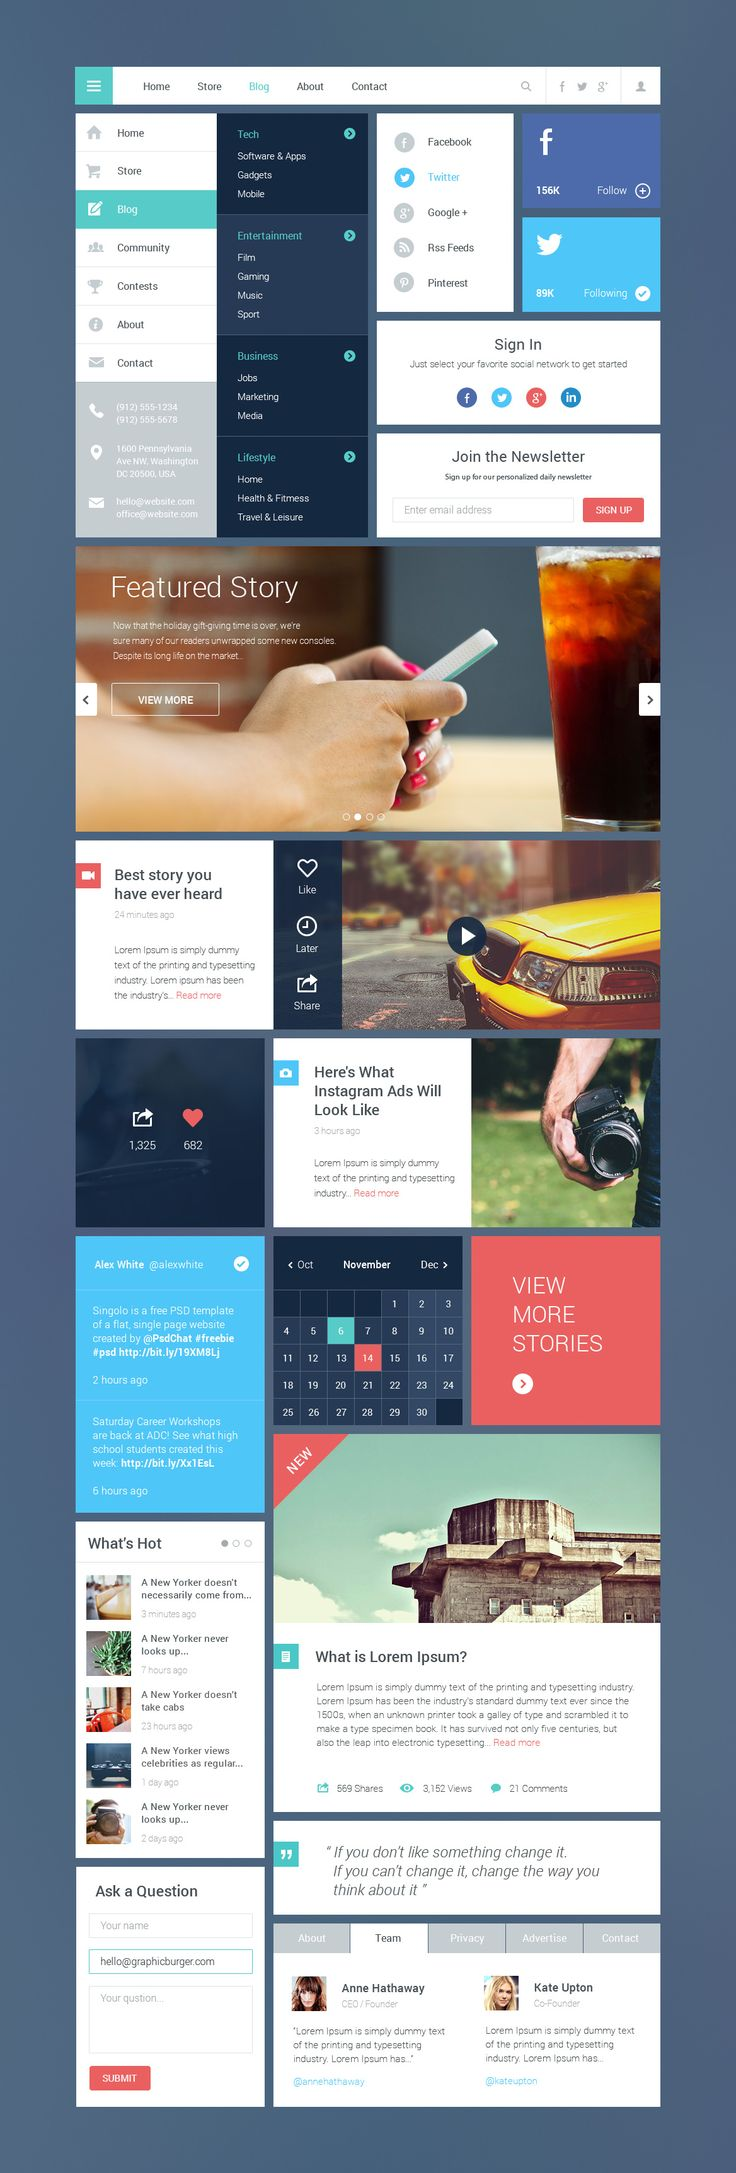 Blog UI Kit found on Dribbble.